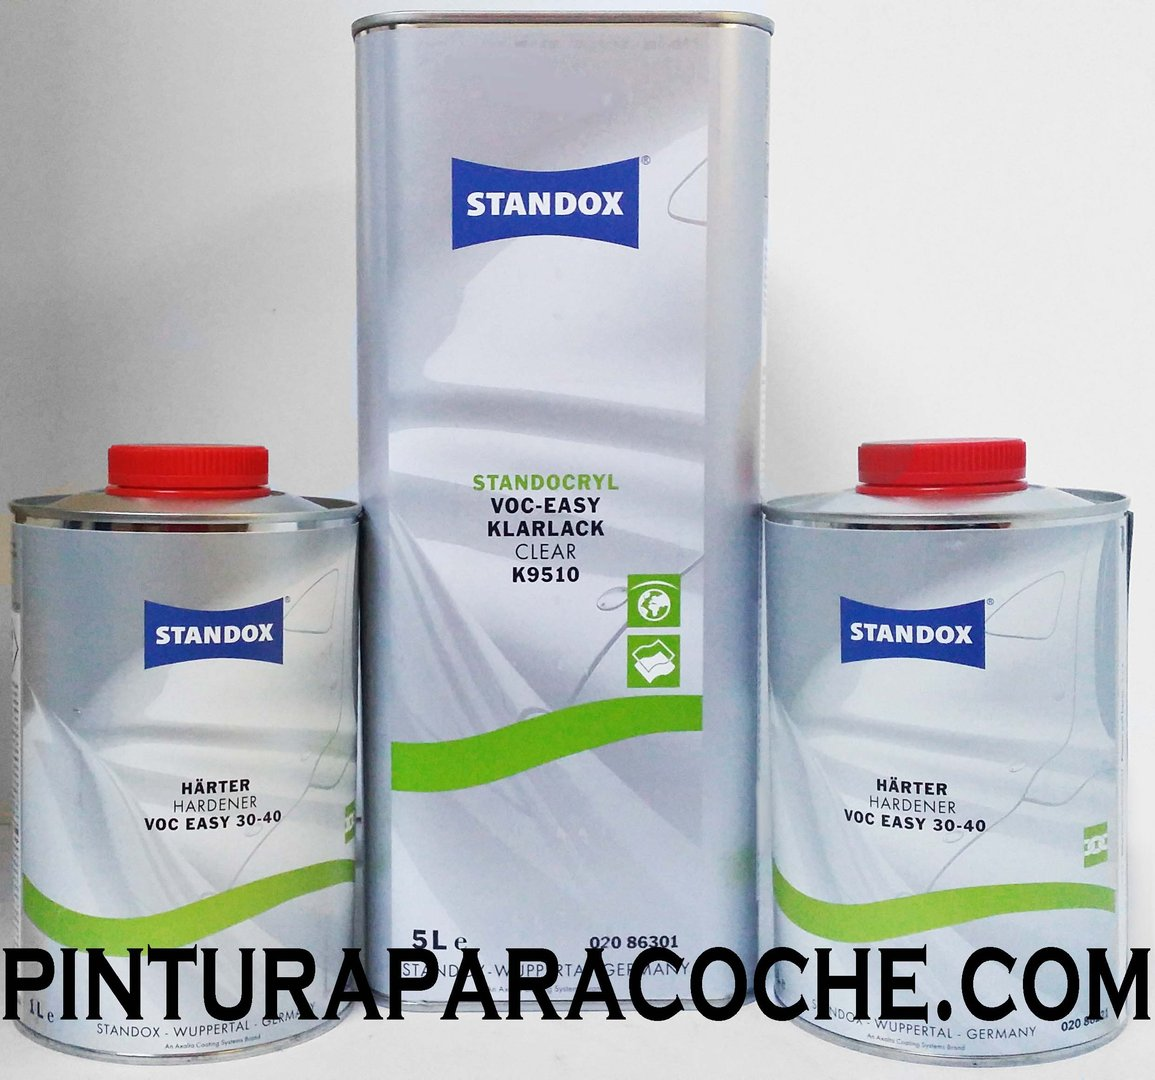 Kit Standox Barniz Easy 5lt. + 2 Catalizadores Easy Lento 1lt